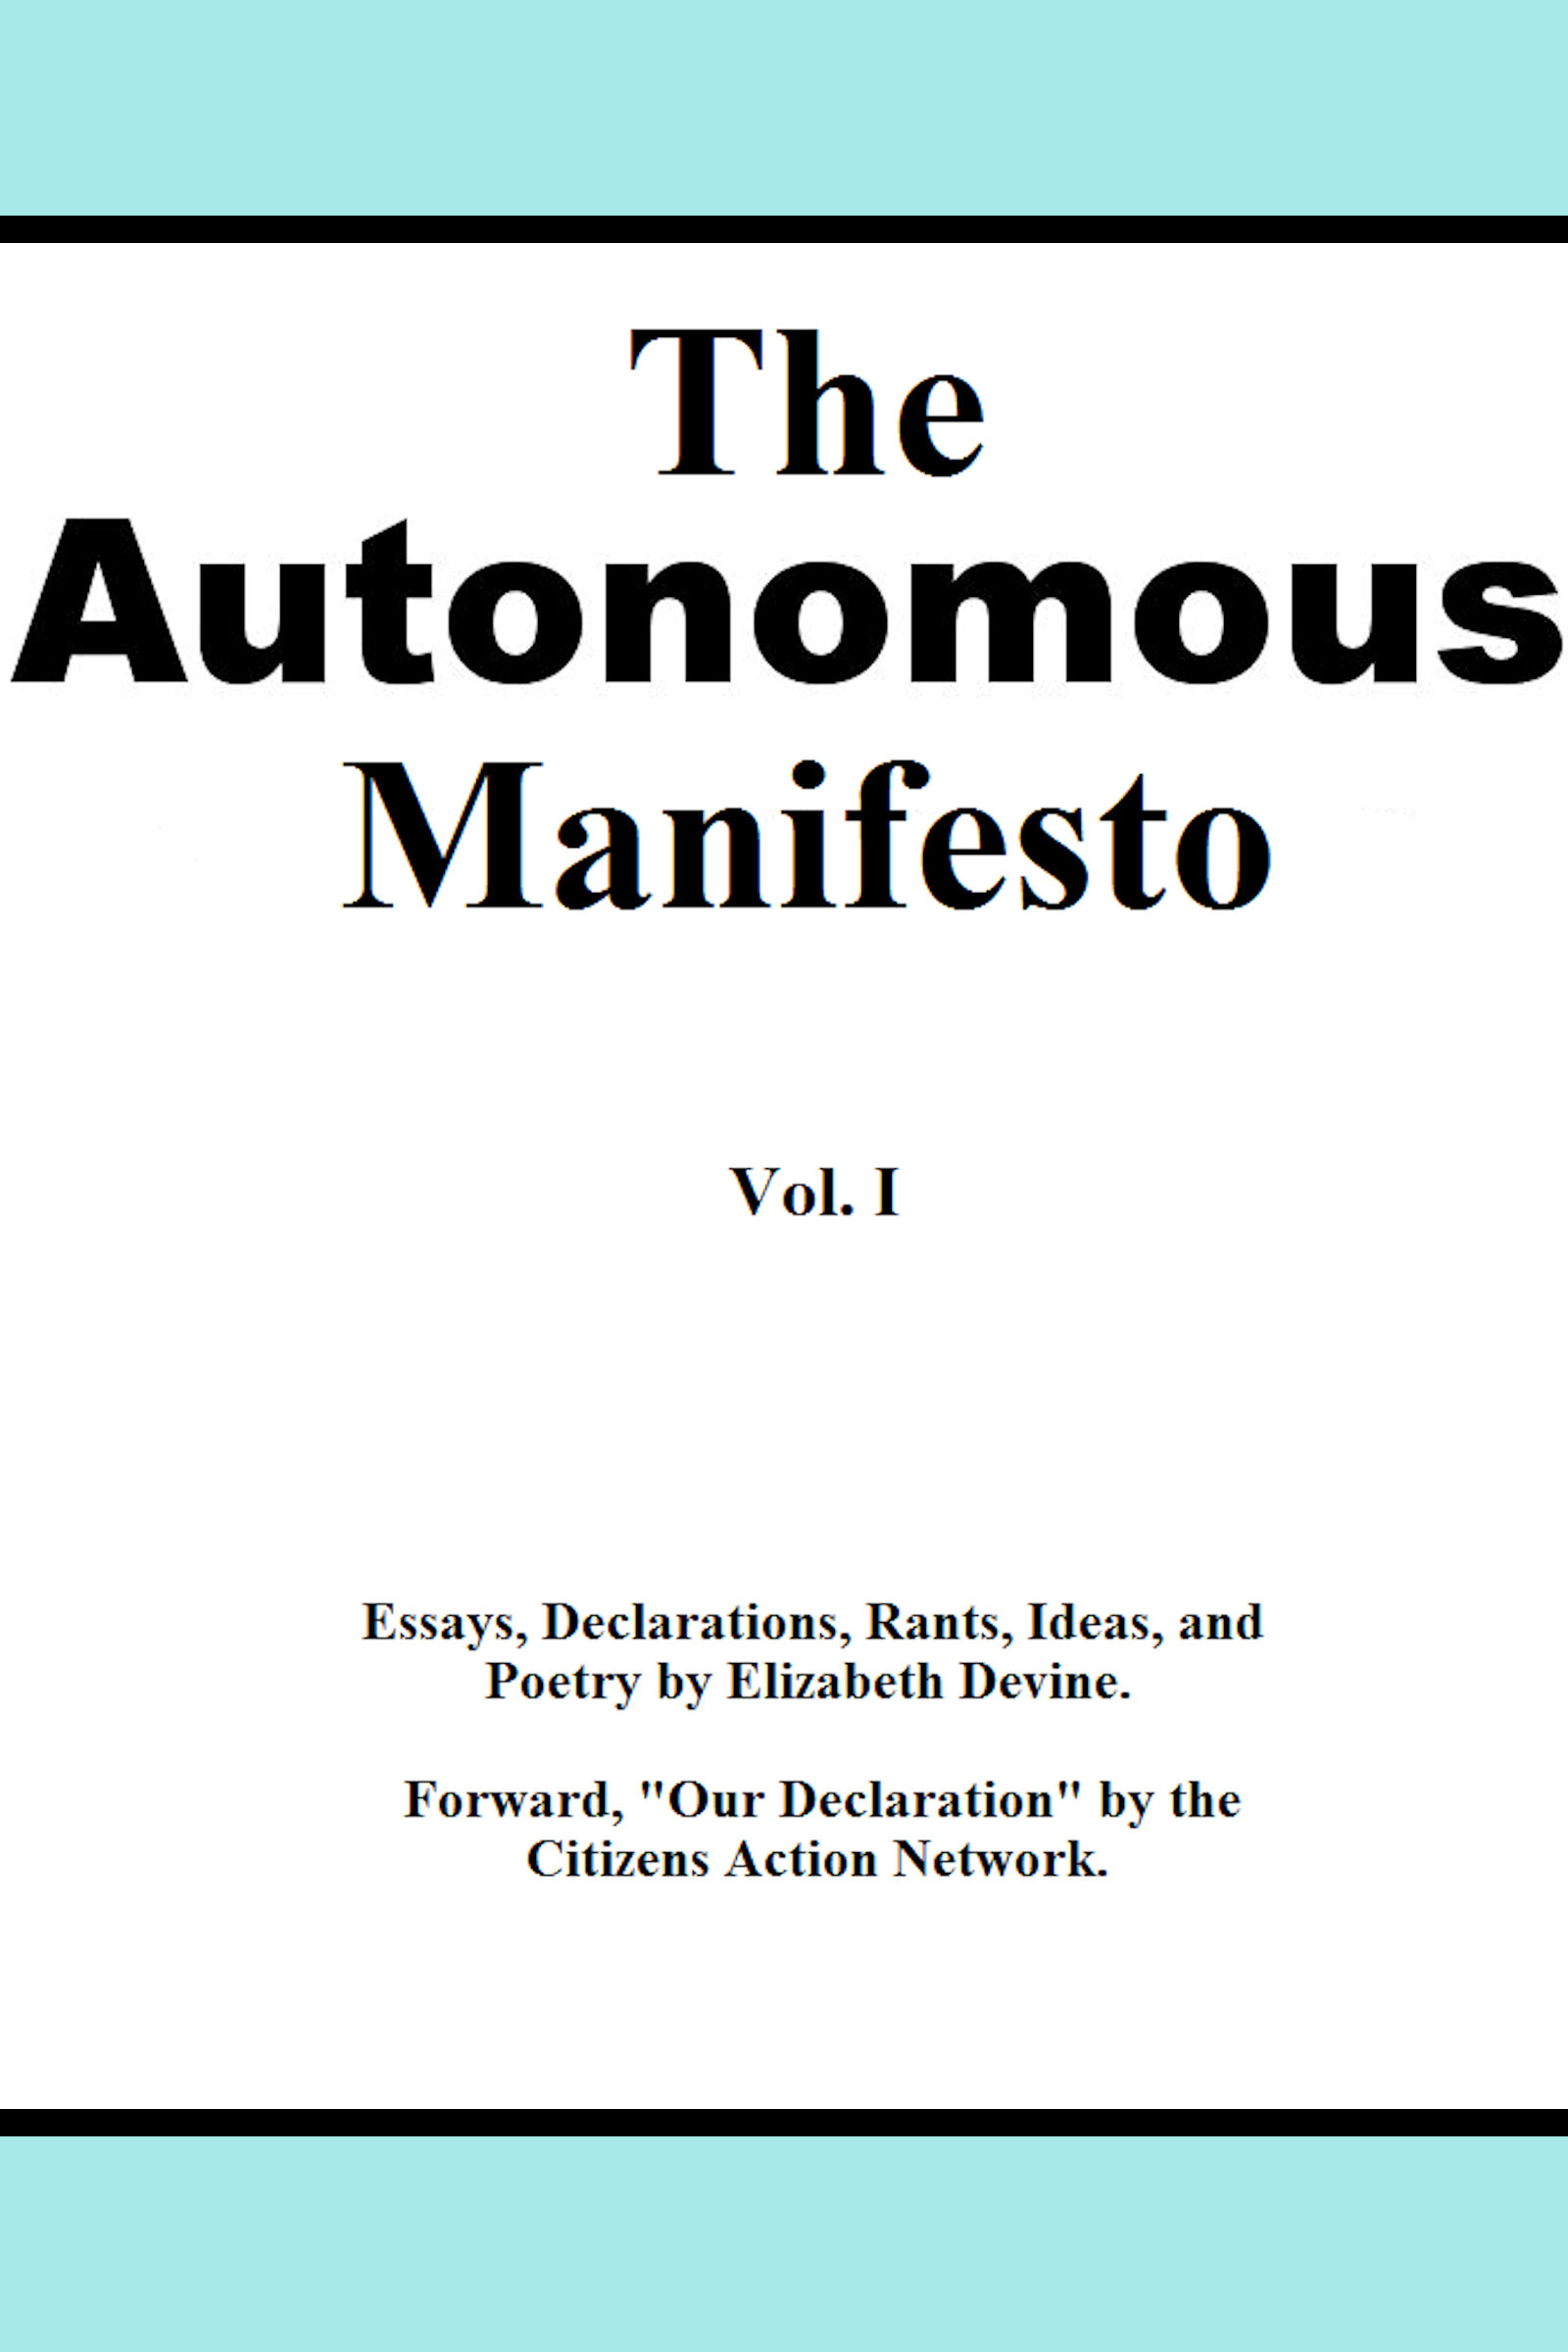 The Autonomous Manifesto, my Second Ebook.